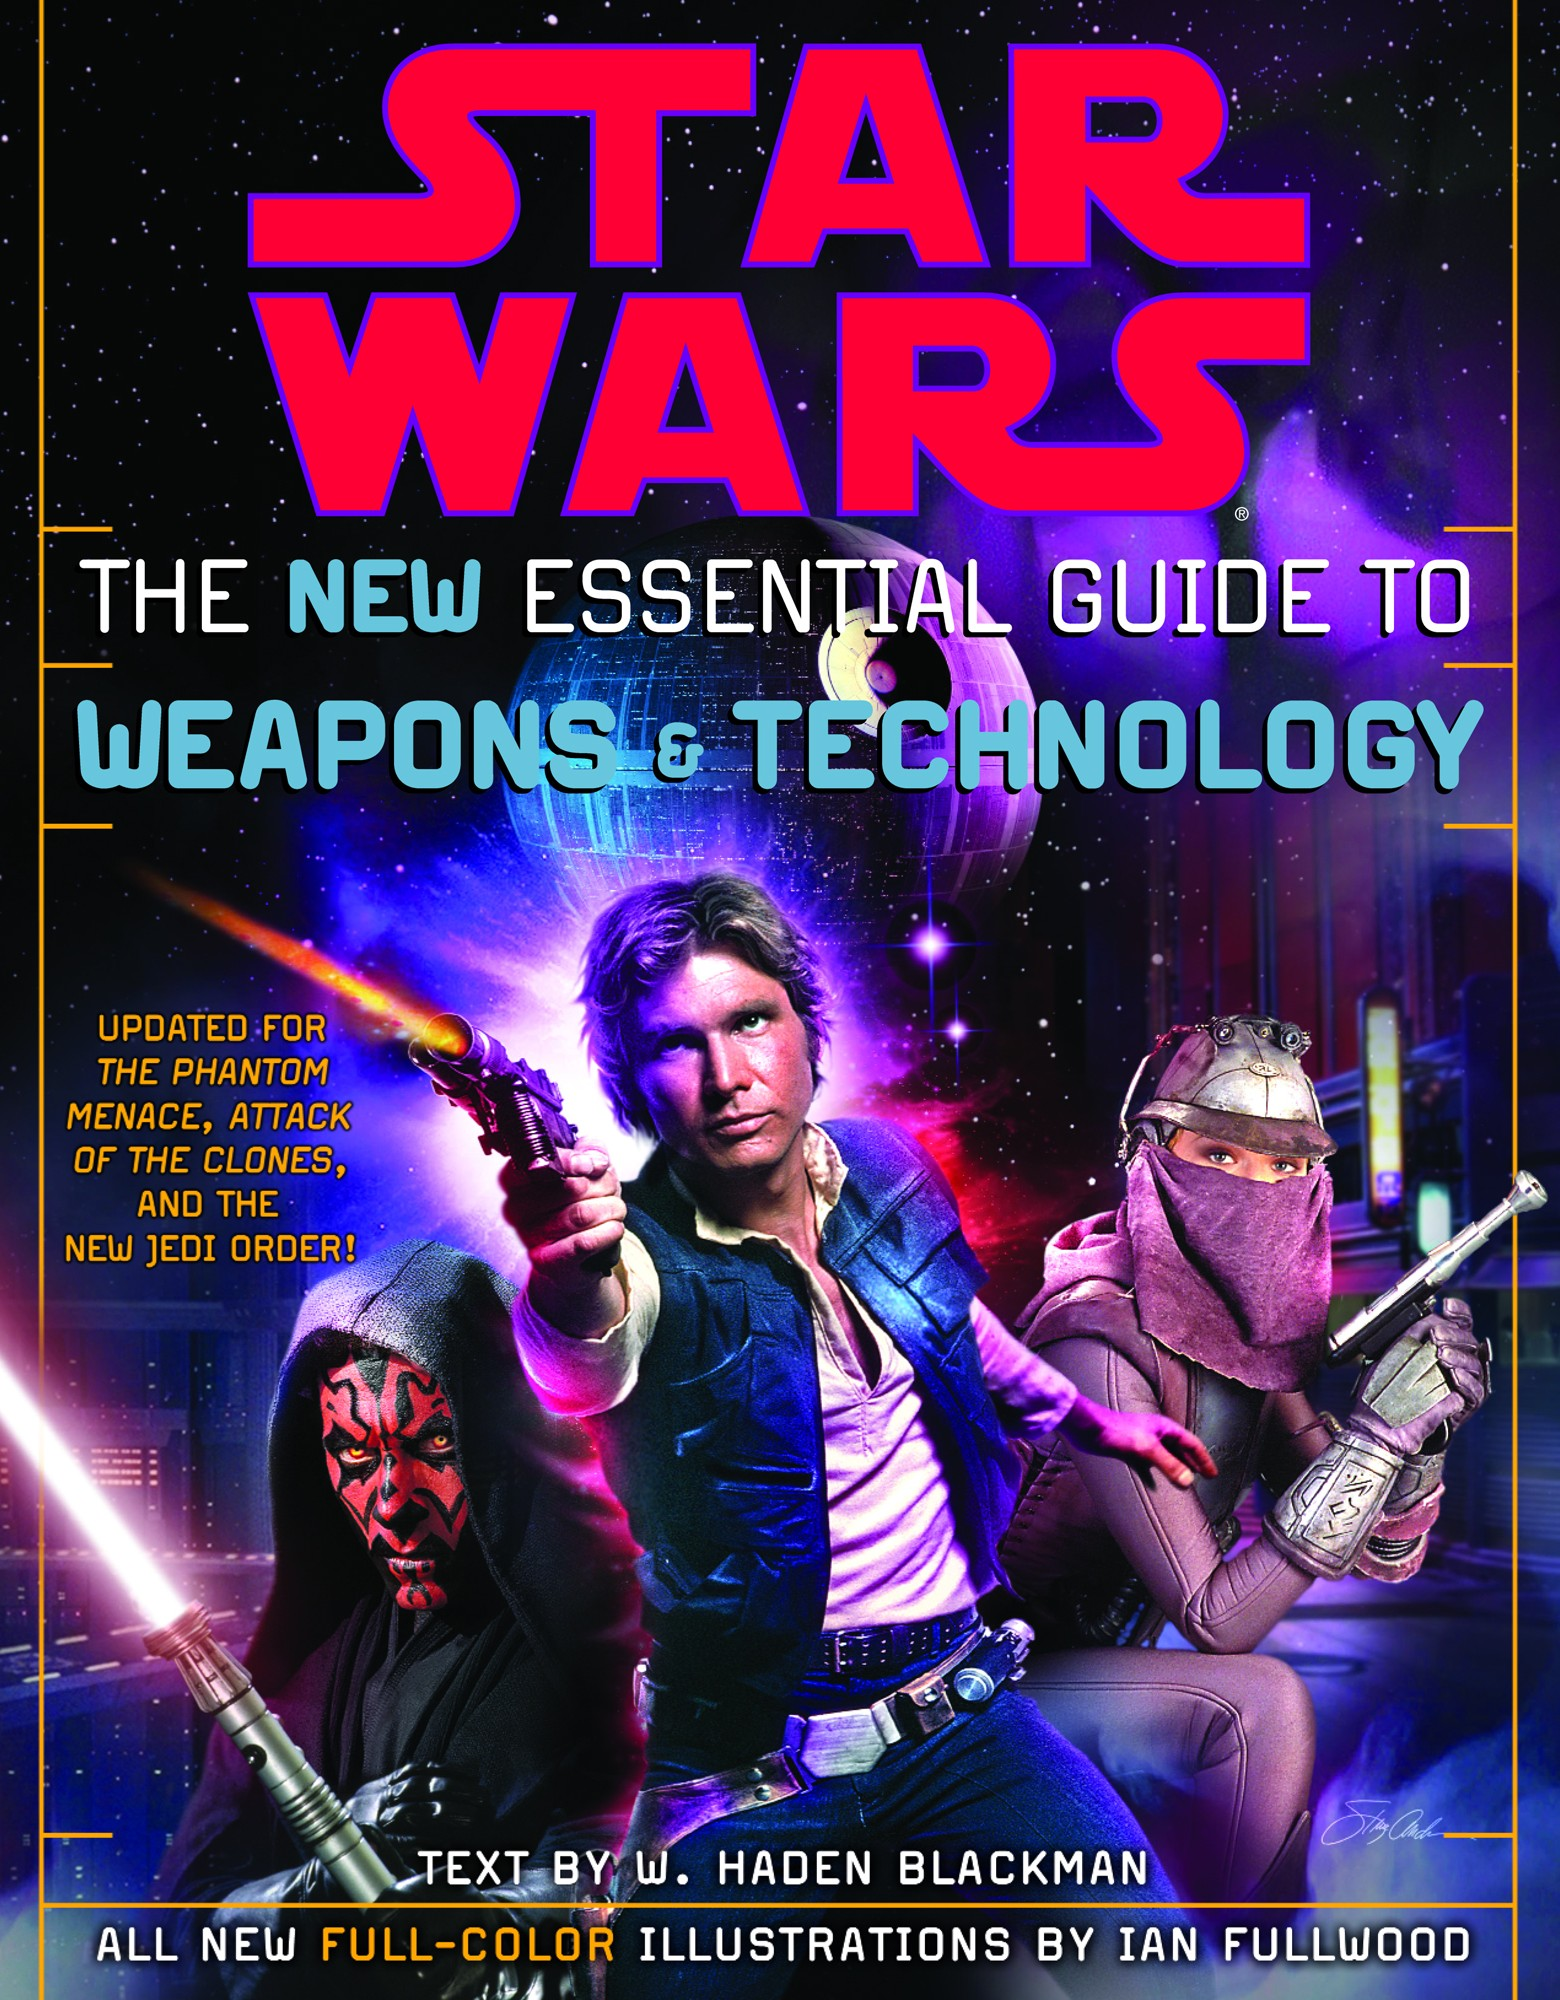 The New Essential Guide to Weapons and Technology